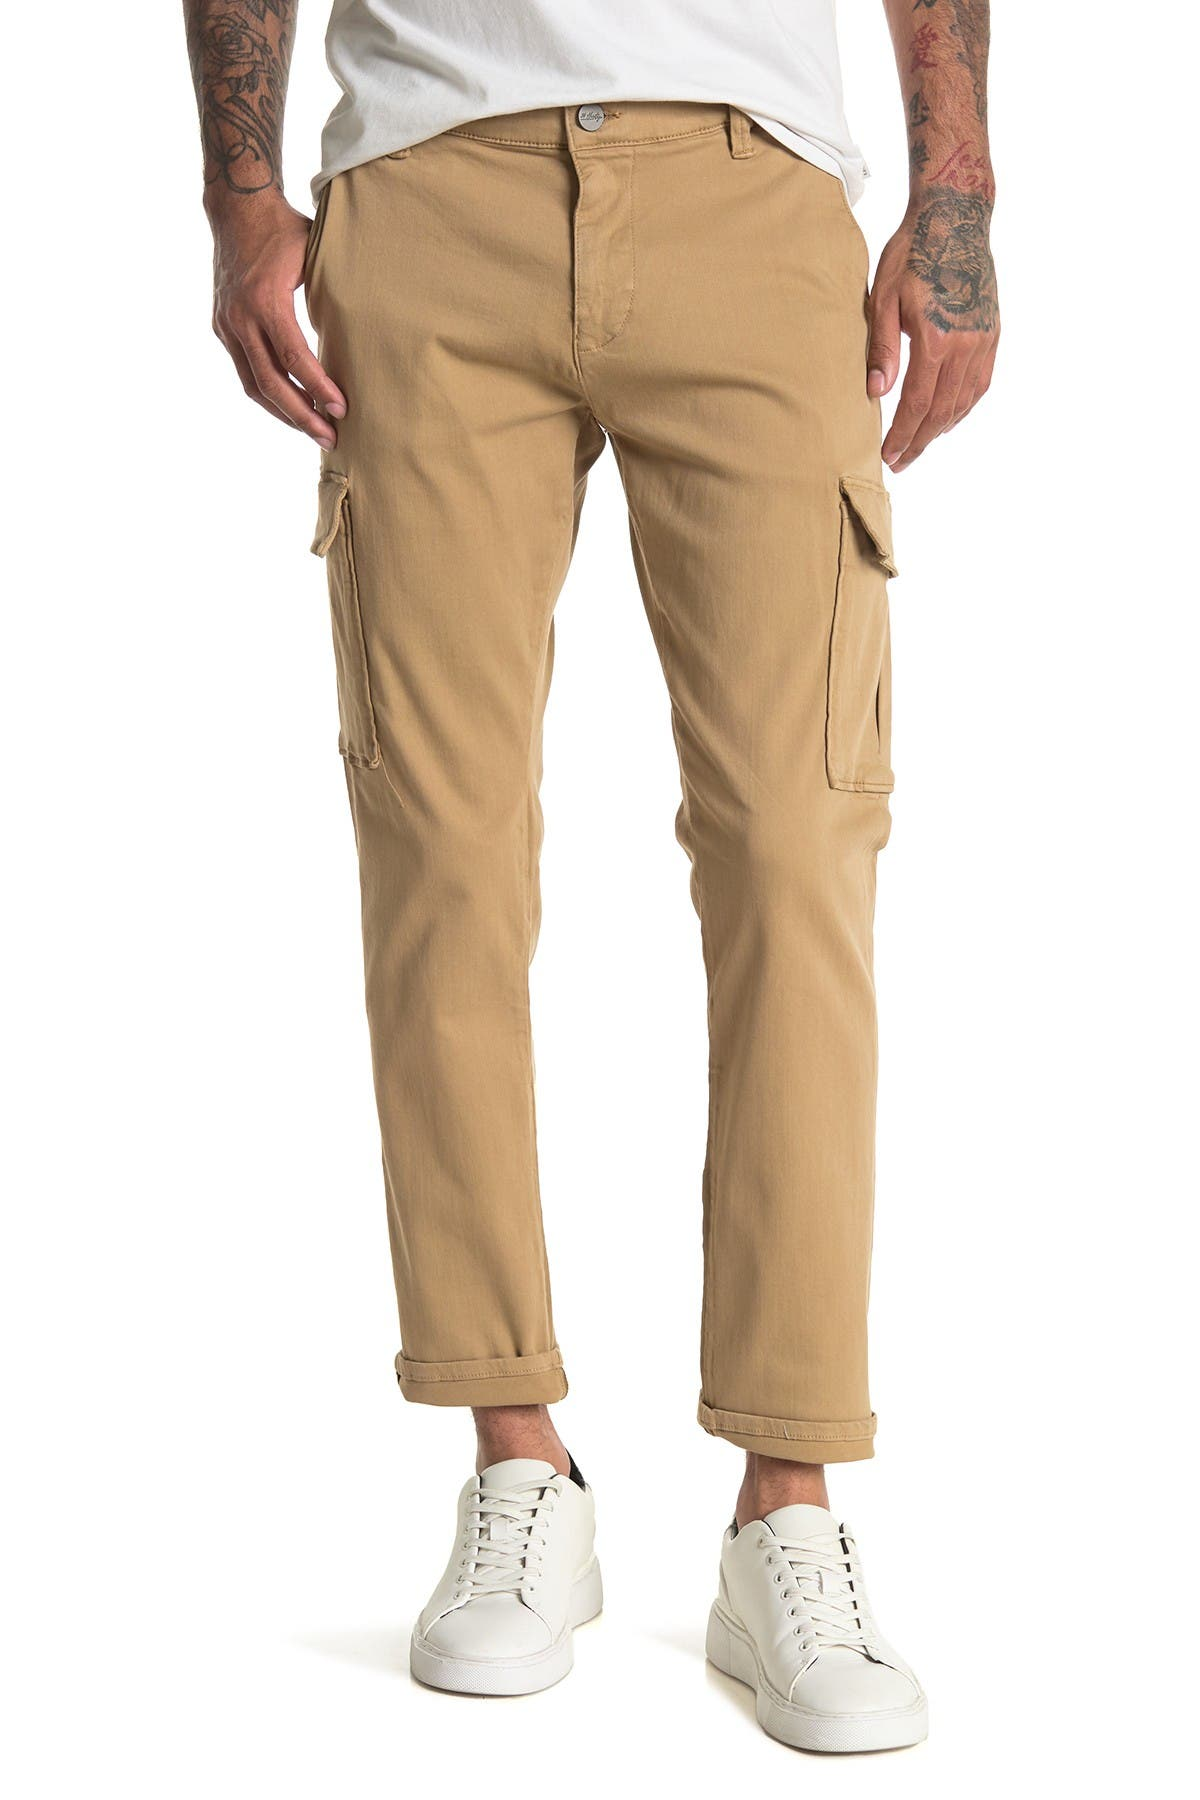 Image of 34 Heritage 34 Carson Golden Twill Cargo Pants